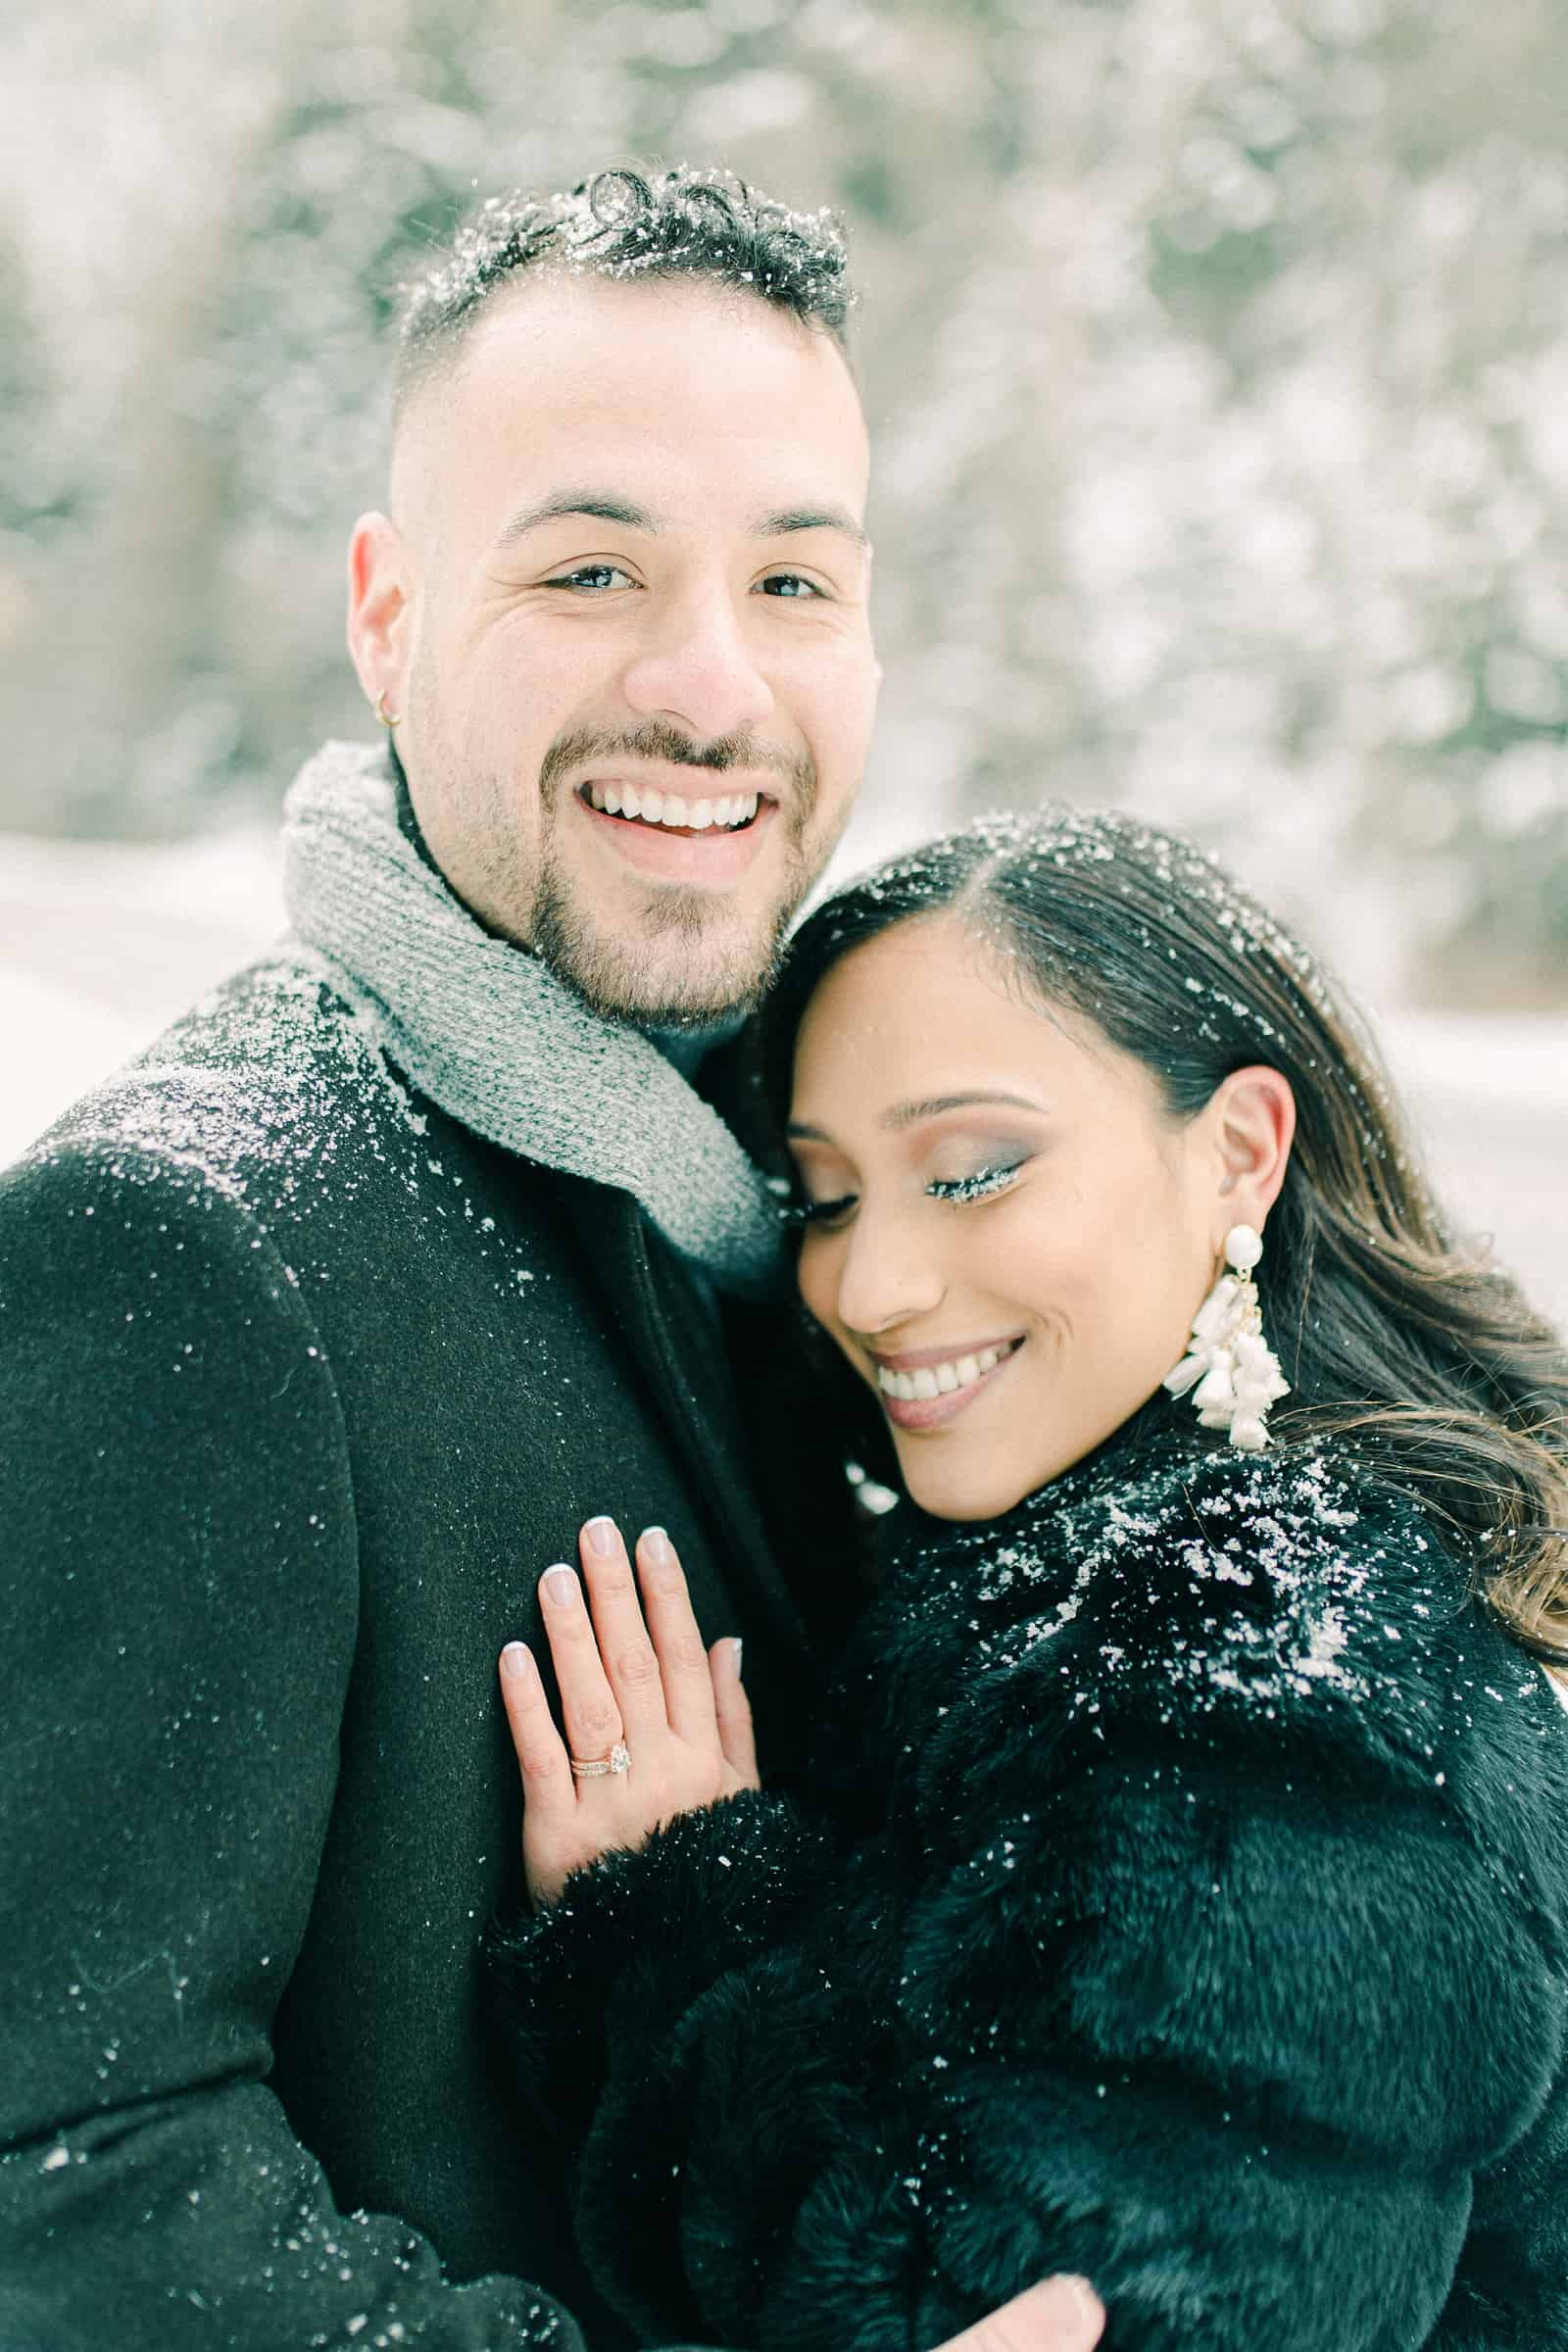 Smiling in the snow, gray scarf and black faux fur coat, engagement ring